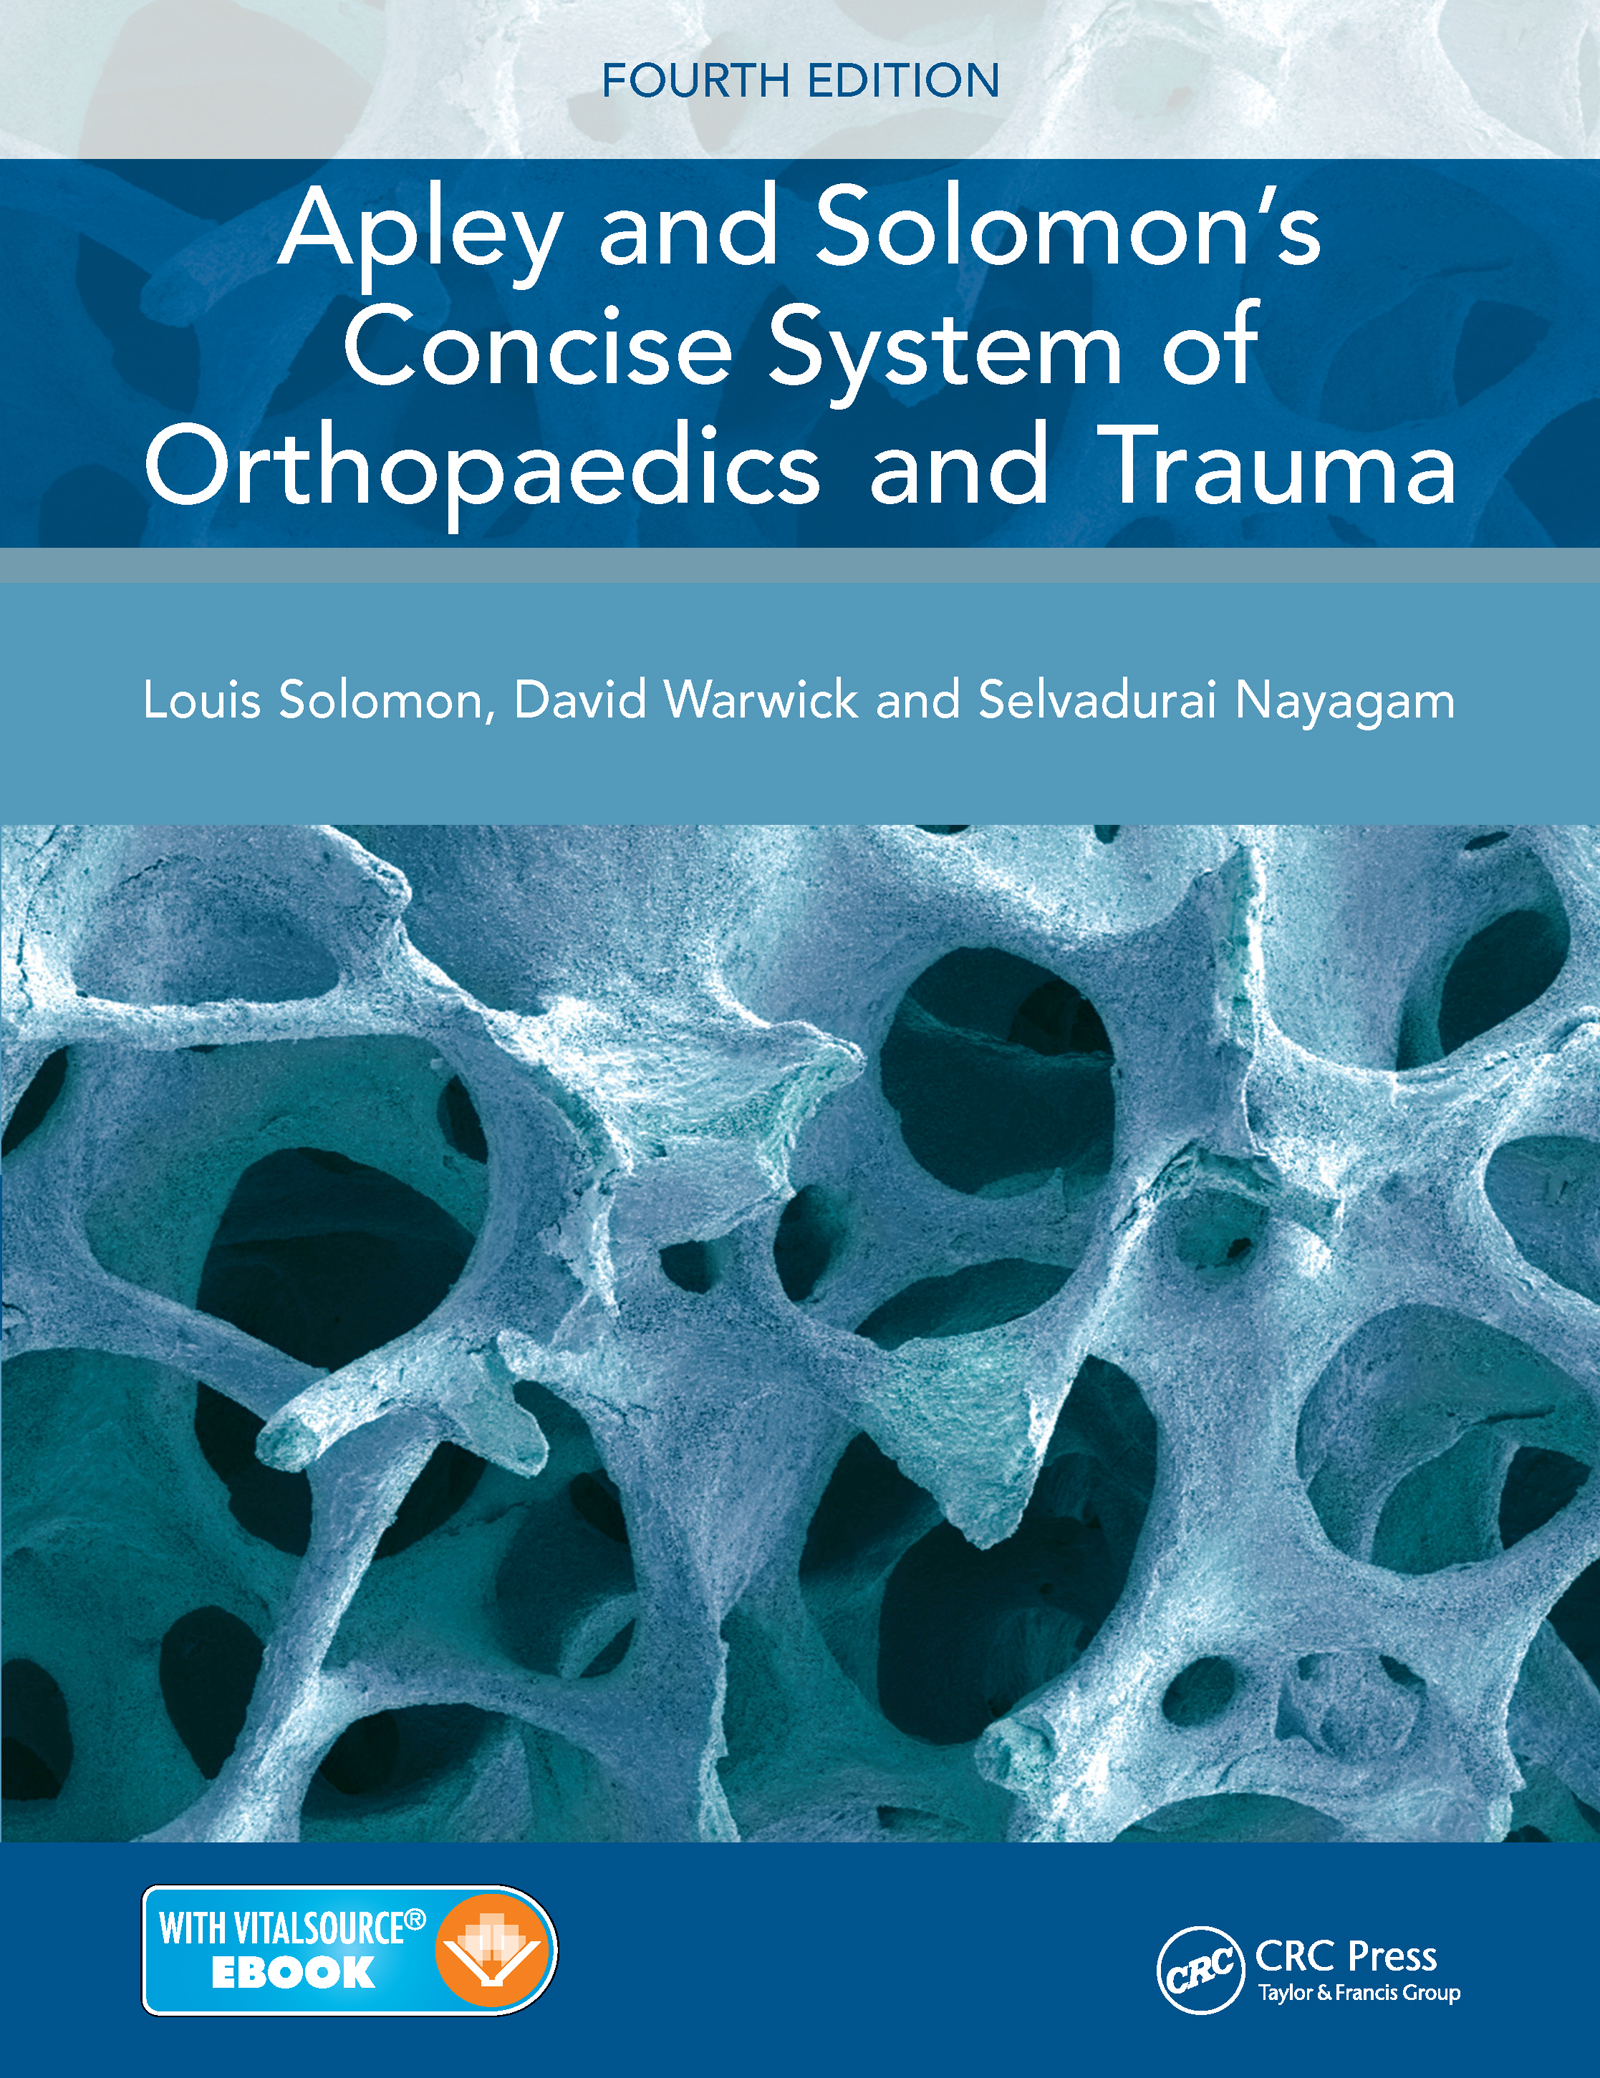 Apley and Solomon's Concise System of Orthopaedics and Trauma, Fourth Edition book cover